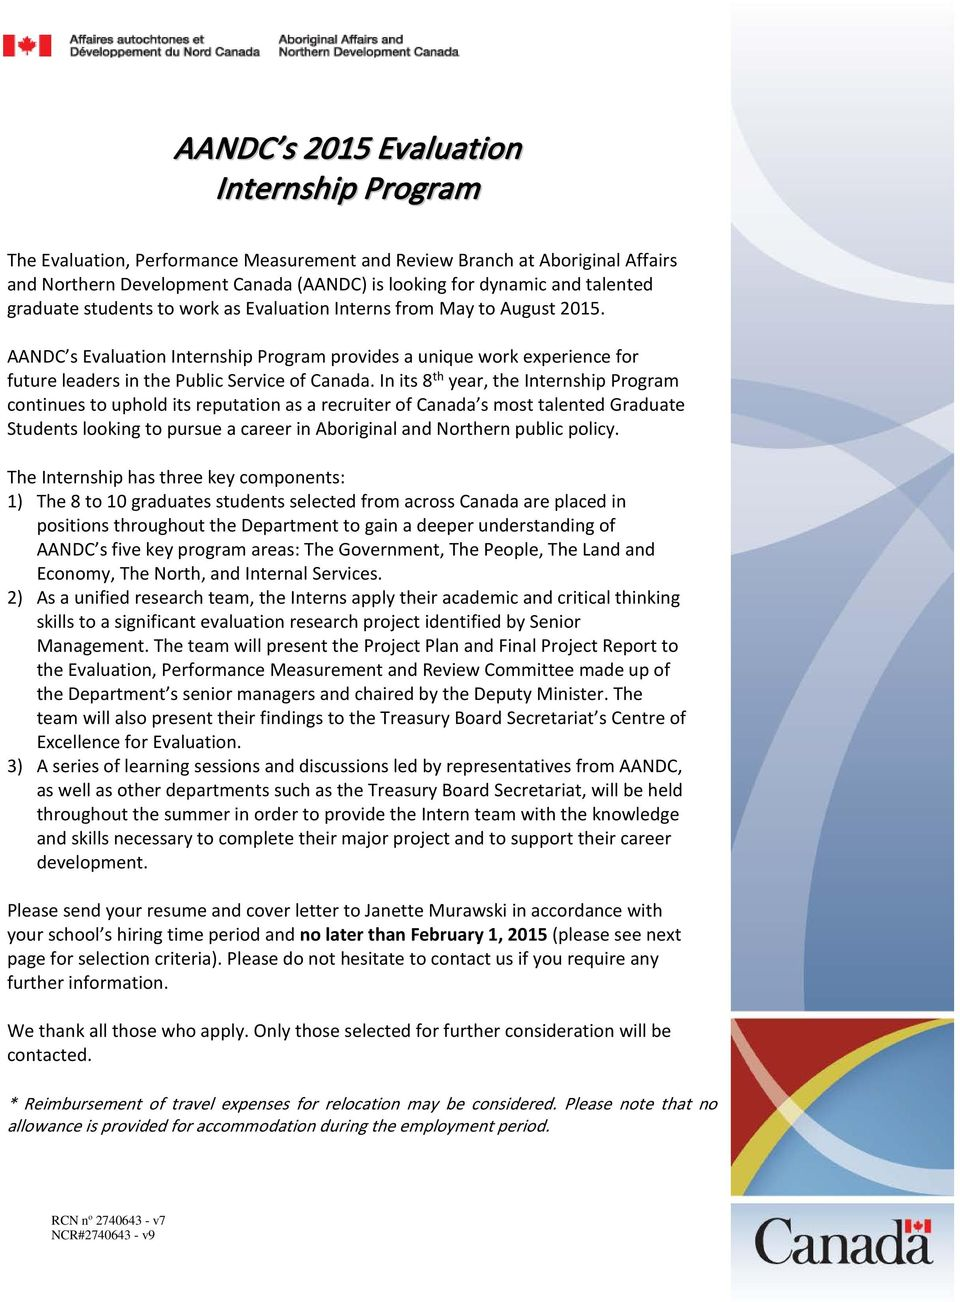 In its 8 th year, the Internship Program continues to uphold its reputation as a recruiter of Canada s most talented Graduate Students looking to pursue a career in Aboriginal and Northern public